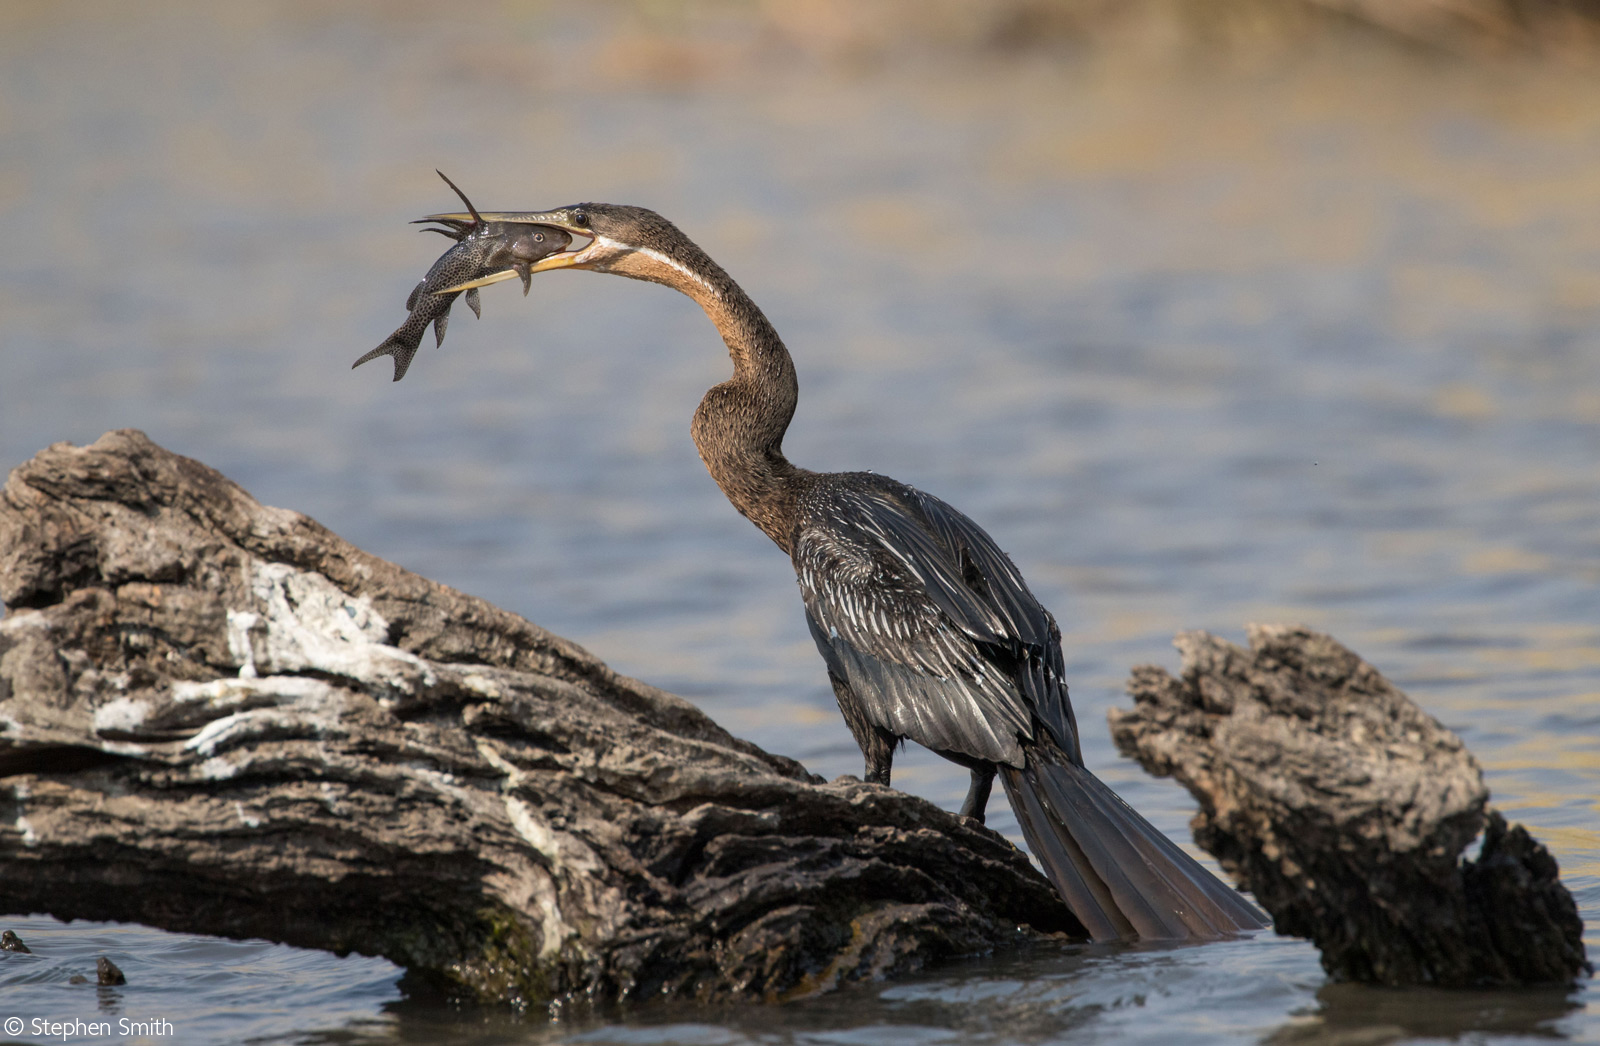 An African darter catches a fish on the Chobe River. Chobe National Park, Botswana © Stephen Smith